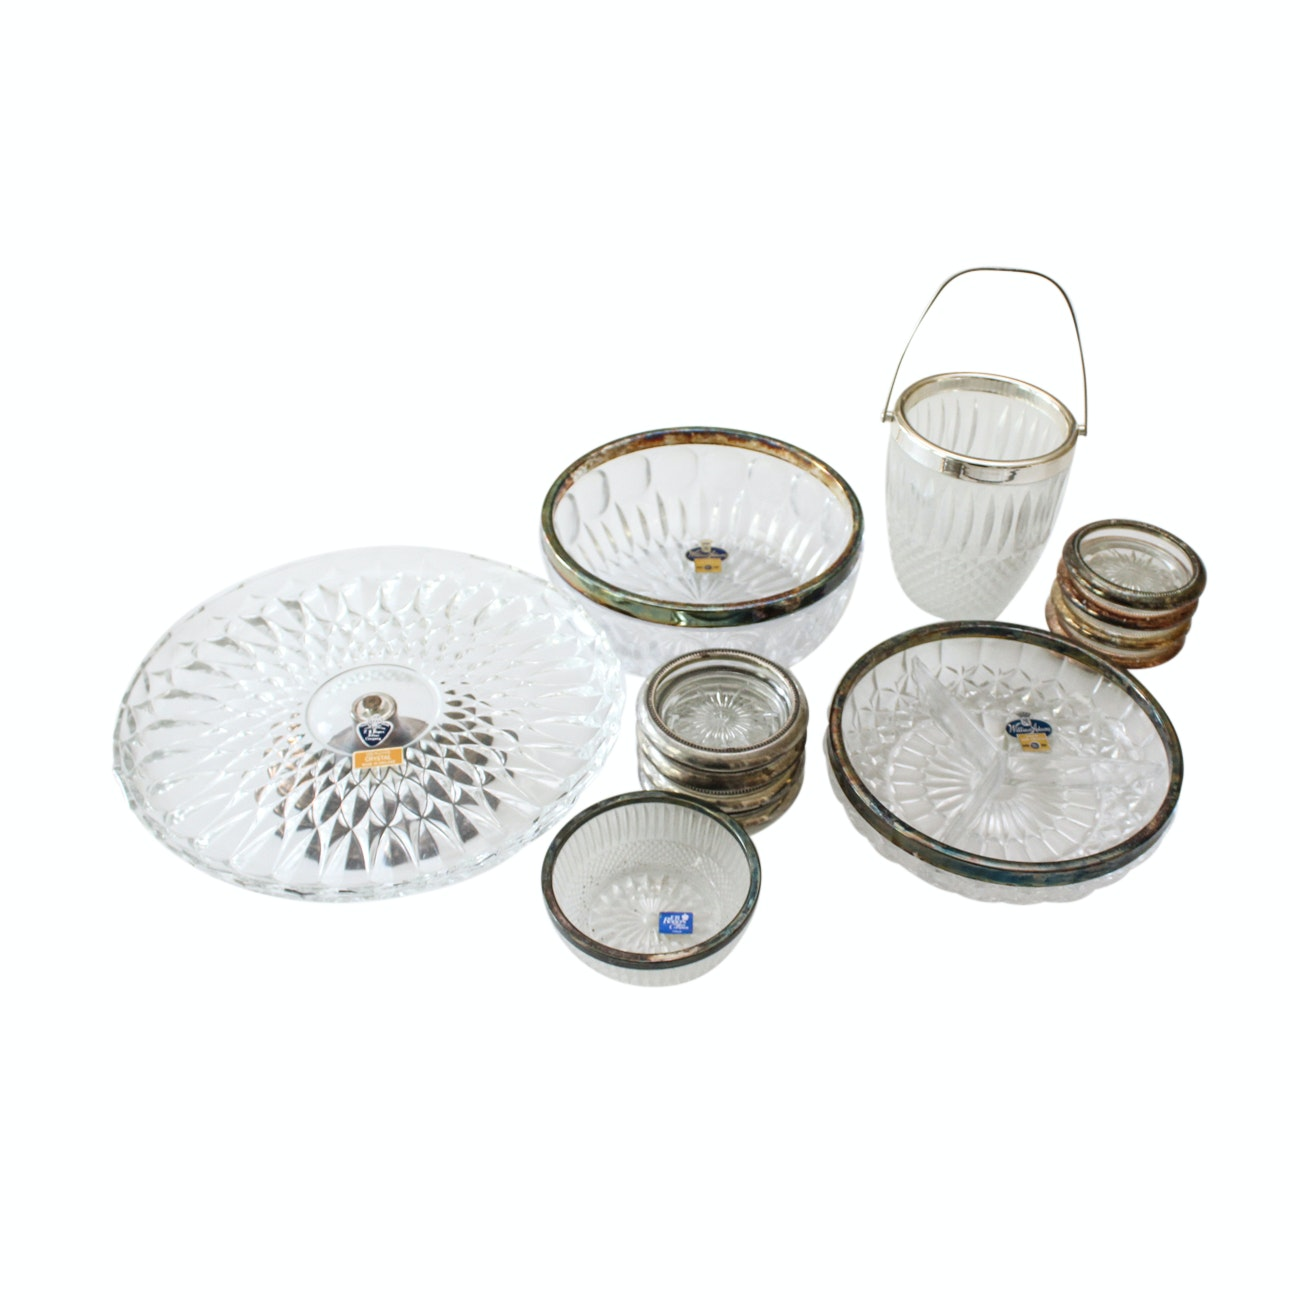 Crystal and Silver Plate Serveware Including William Adams and F.B. Rogers